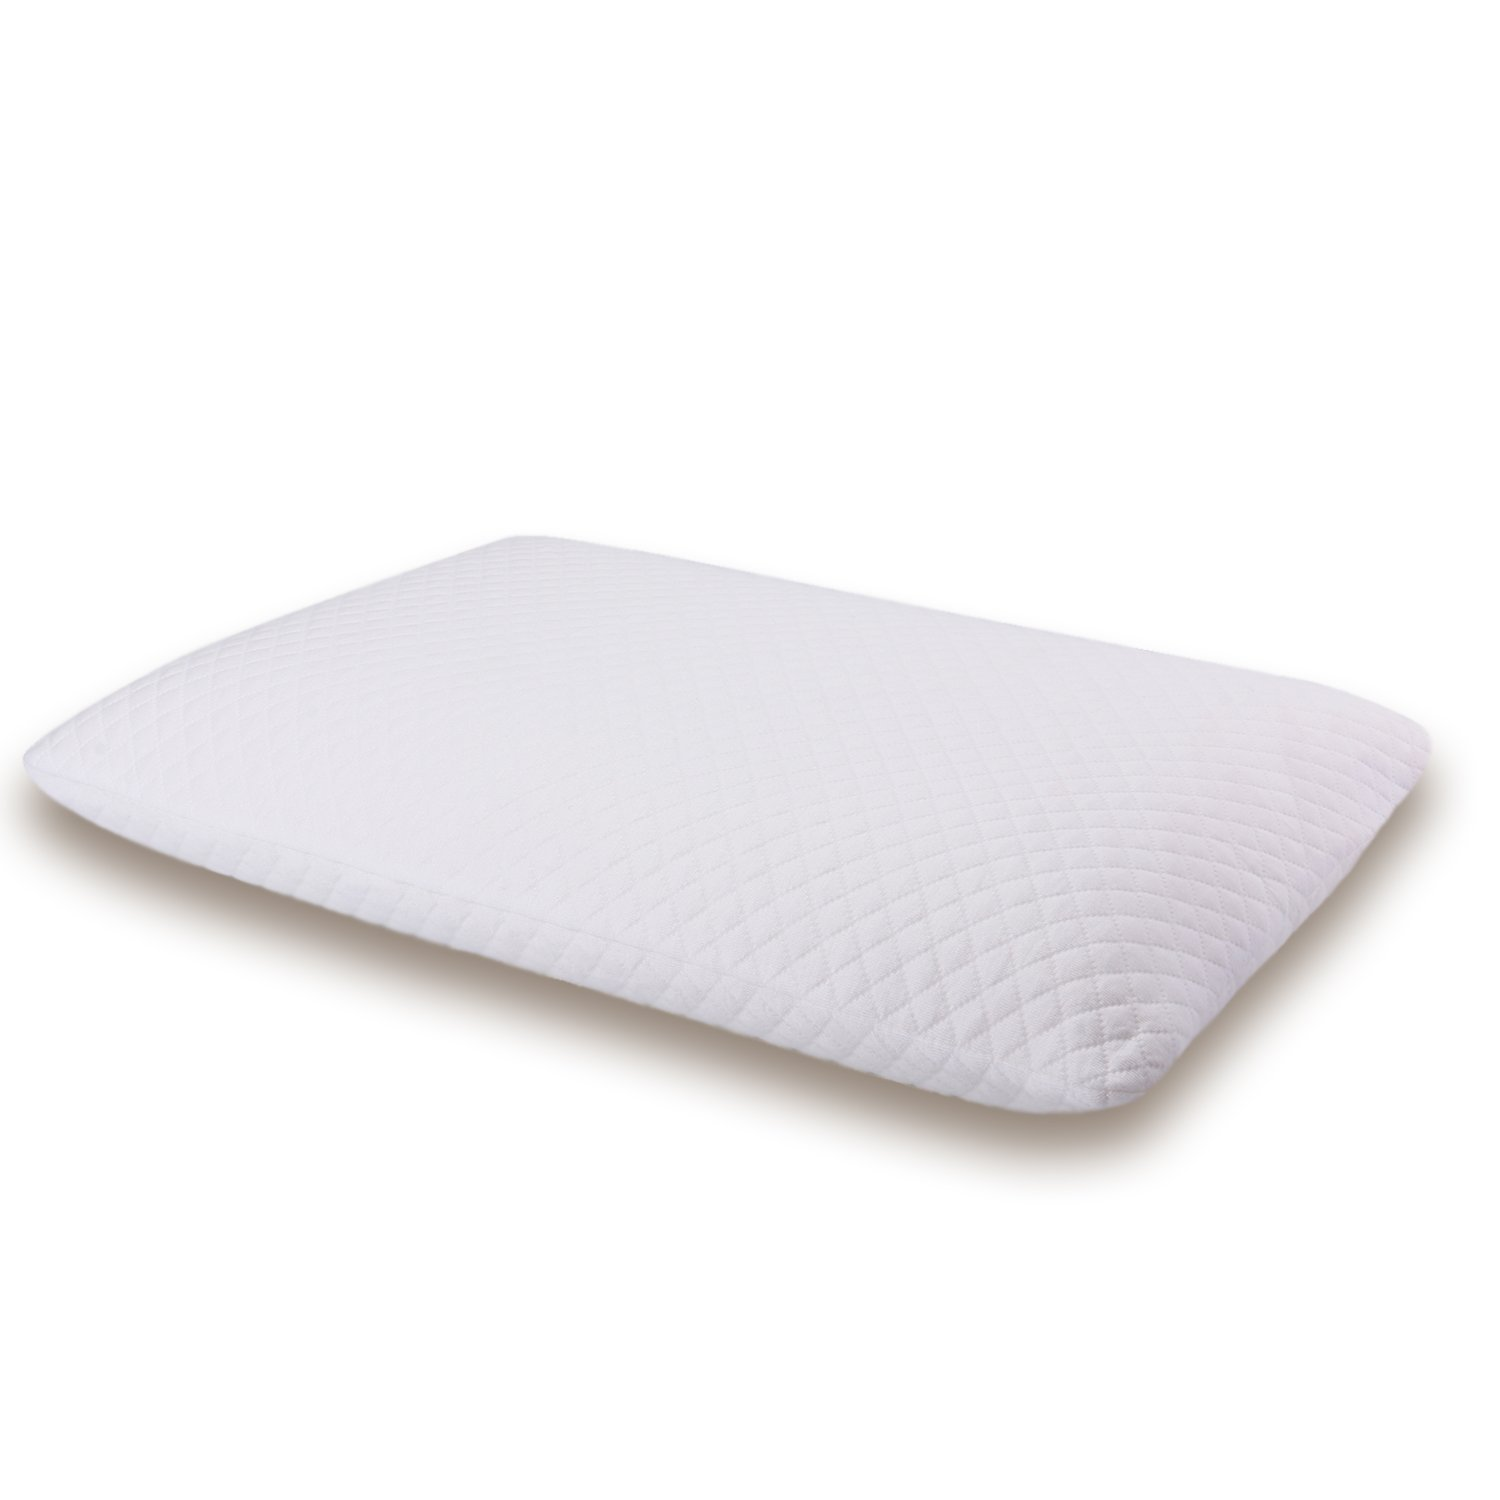 Memory Foam Bed Pillow for Sleeping Ventilated and AirCell Technology with Washable Cover by Thetis Homes